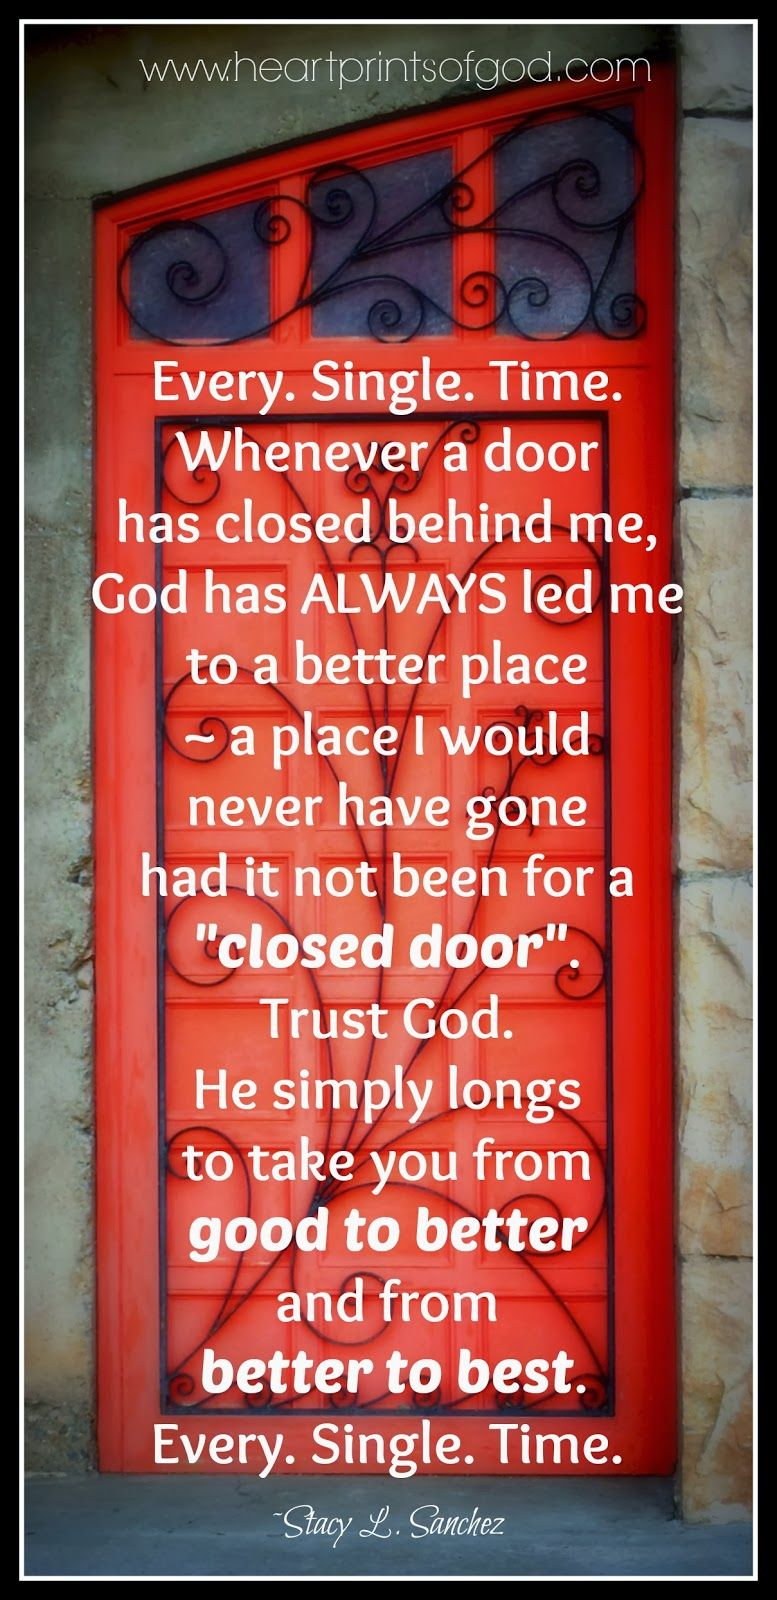 Quotes About Doors God And Closed Doorshttpwww.pinterestknowingjesuspins